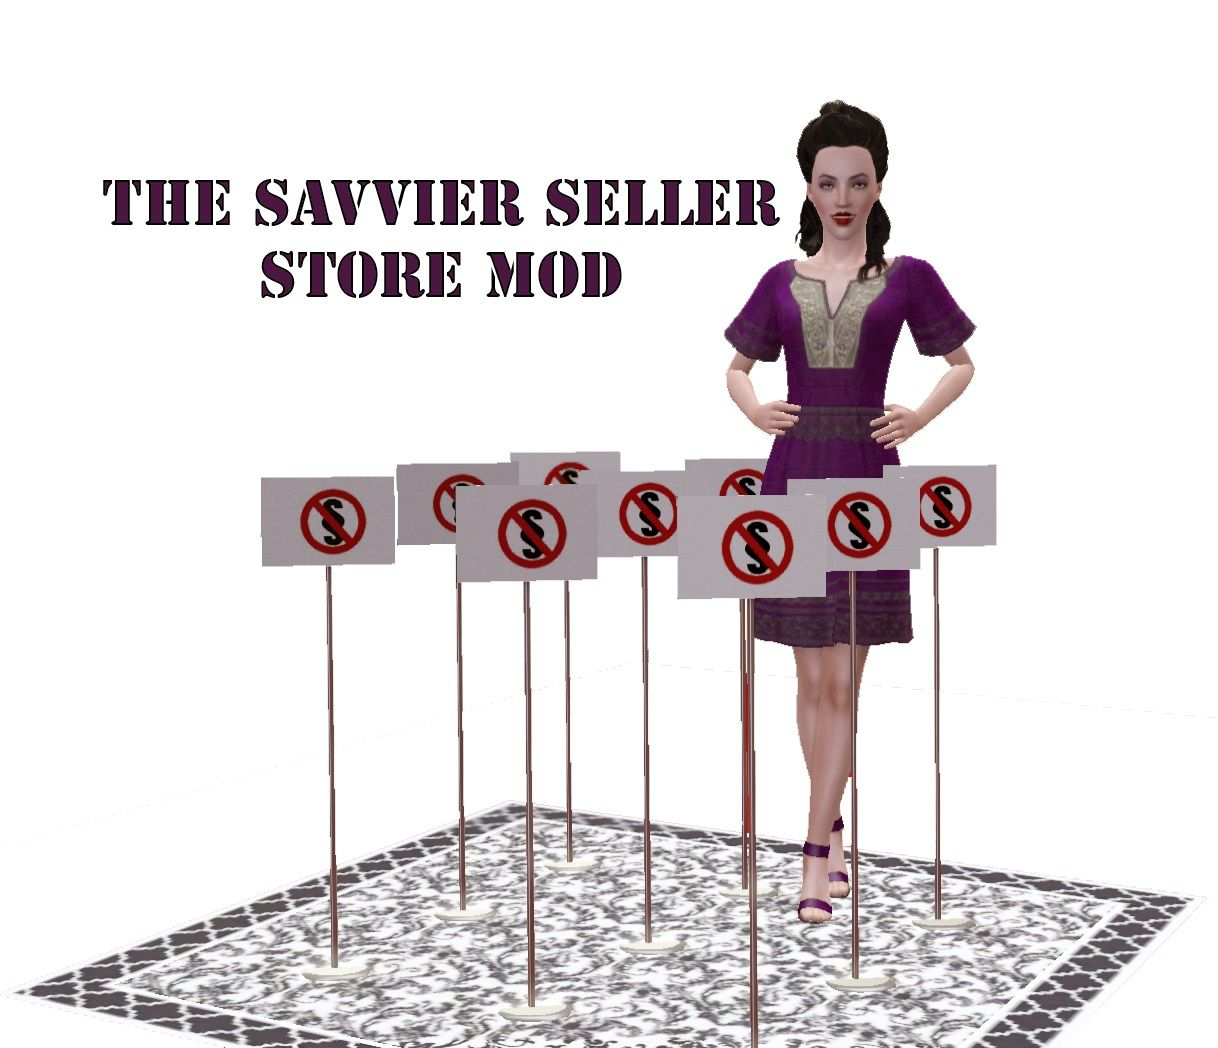 ani@MTS - The Savvier Seller Mod - Version 4 #Sims3